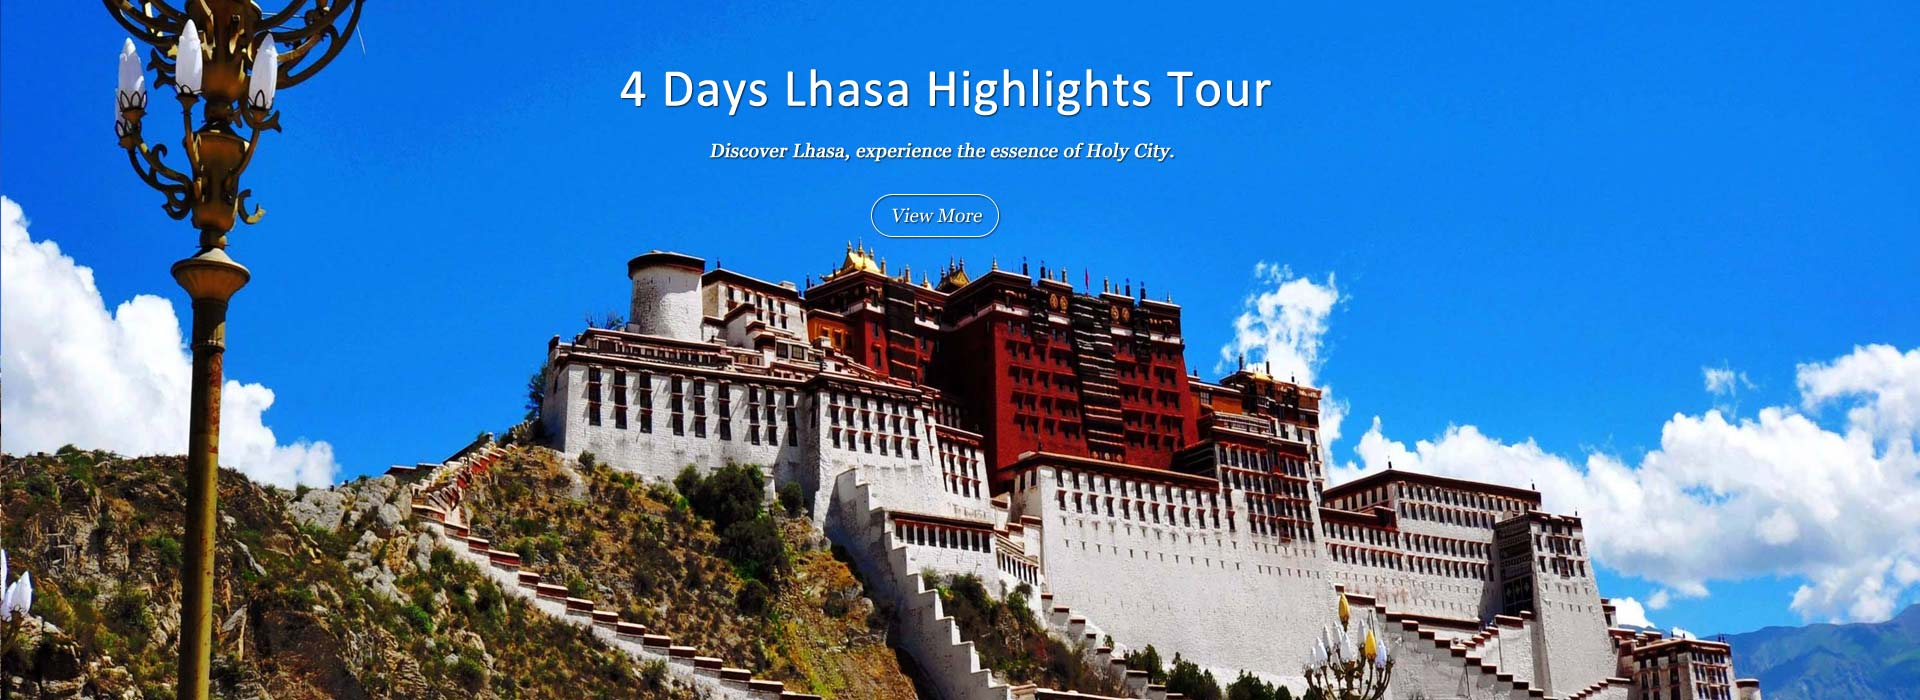 4 Days Holy City Lhasa Tour